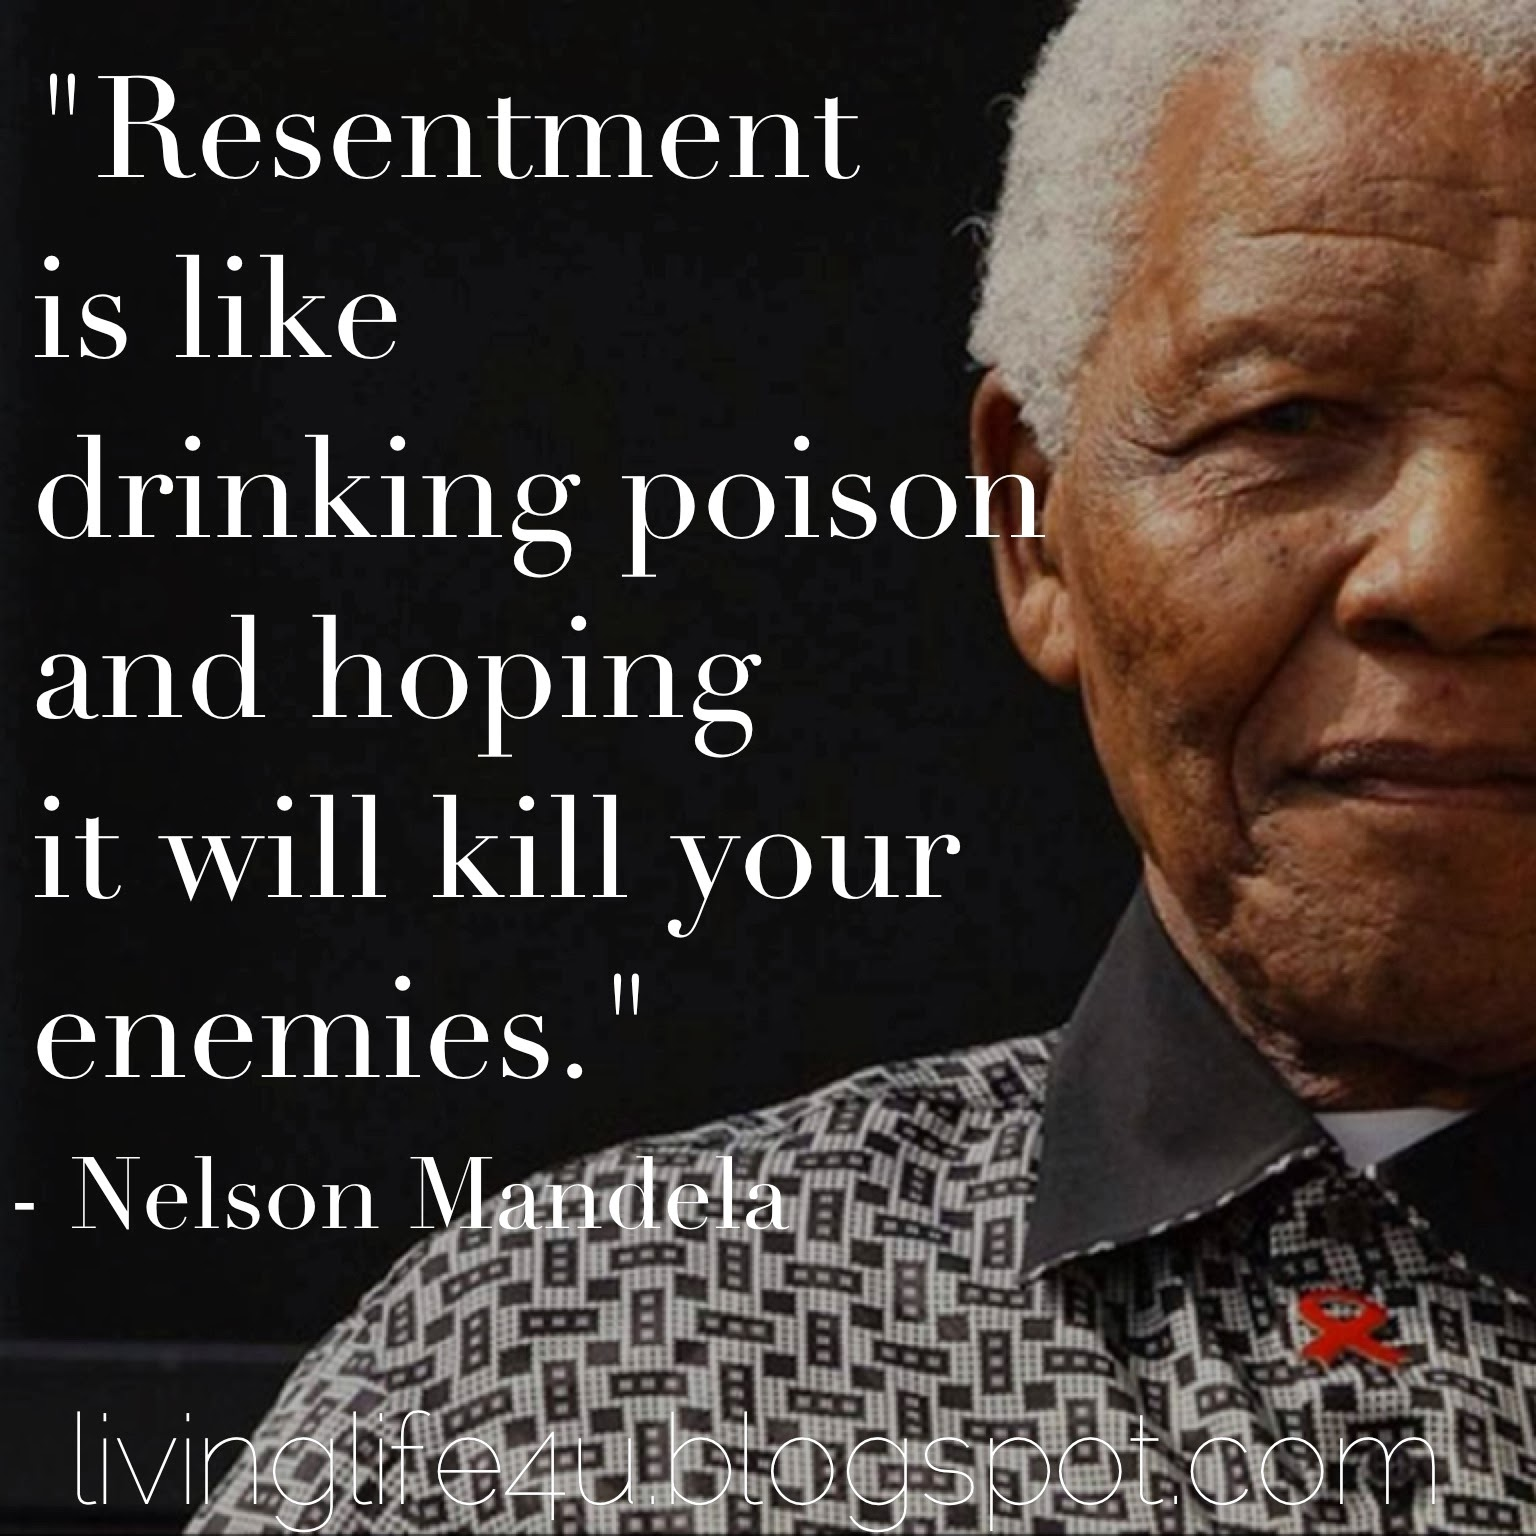 Quotes About Anger And Rage: Quotes From Mandela About Resentment. QuotesGram